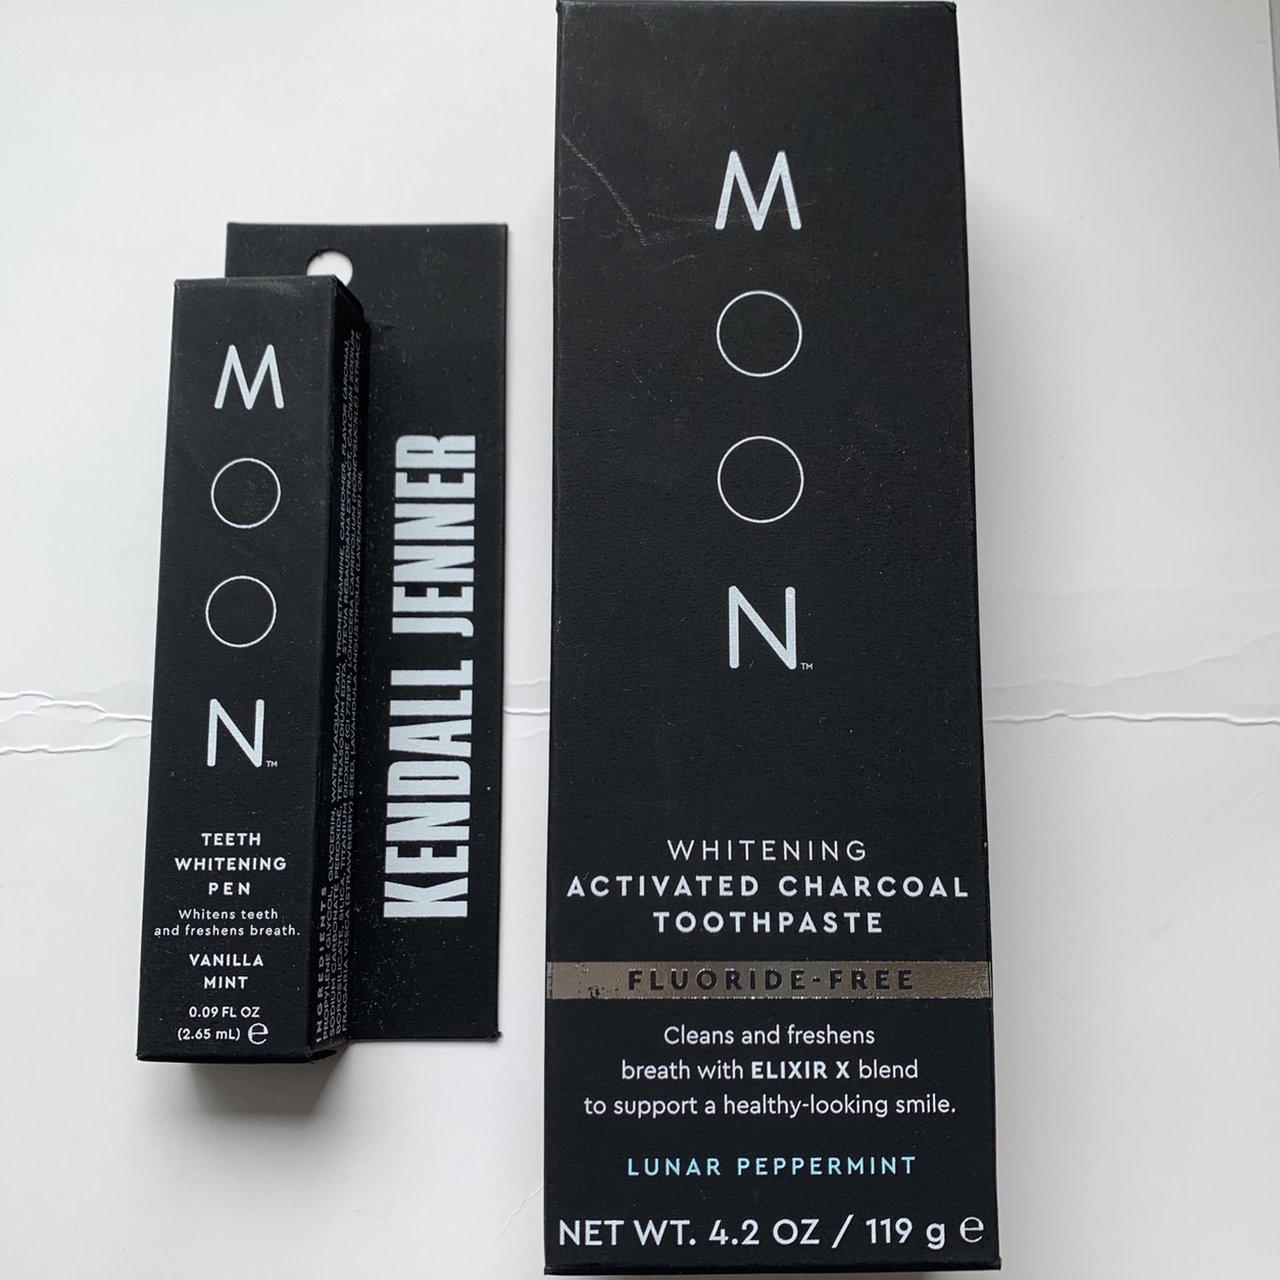 Moon Oral Care Kendall Jenner Whitening Pen And Depop